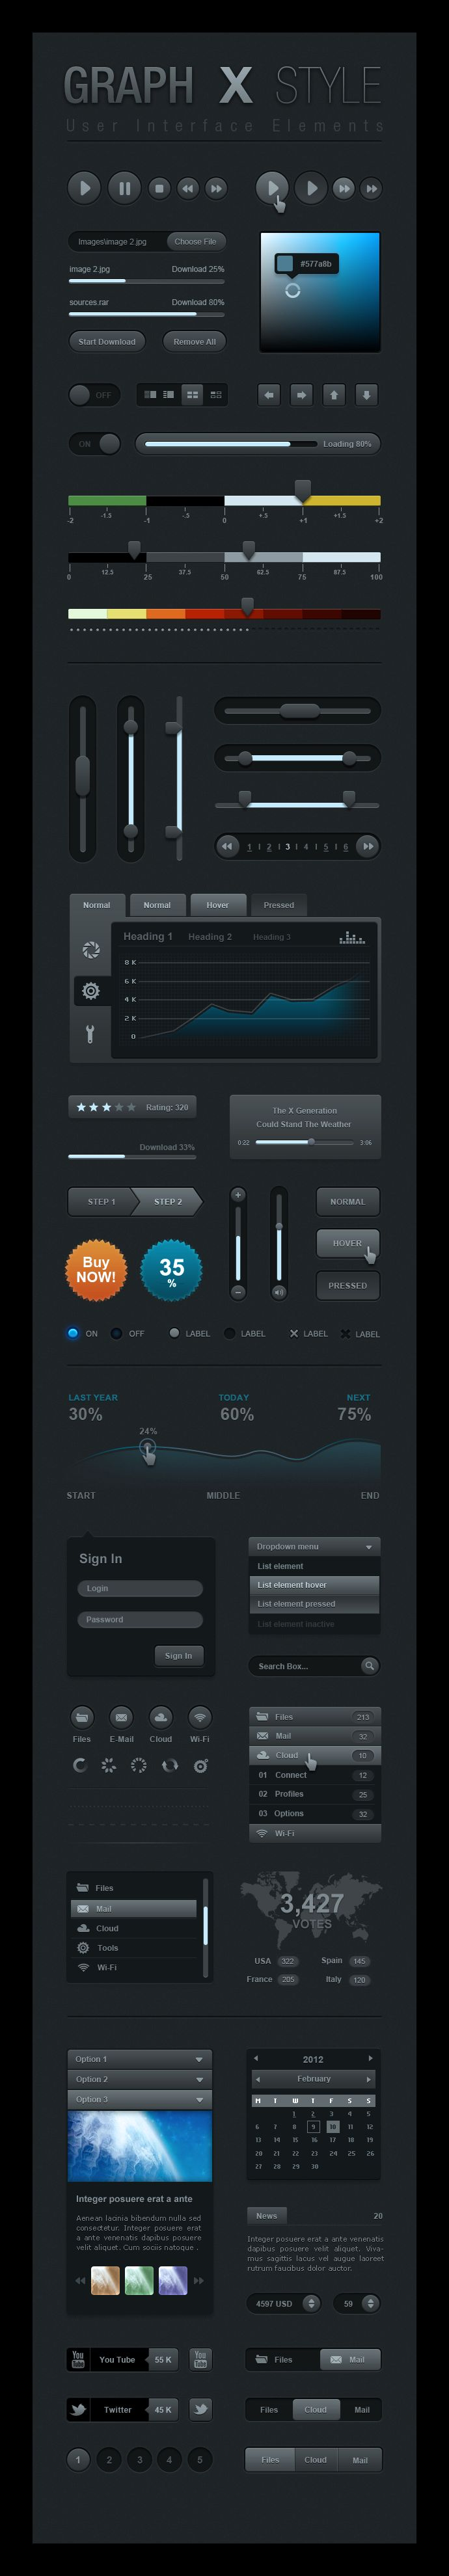 Graph X User Interface elements by dmonzon